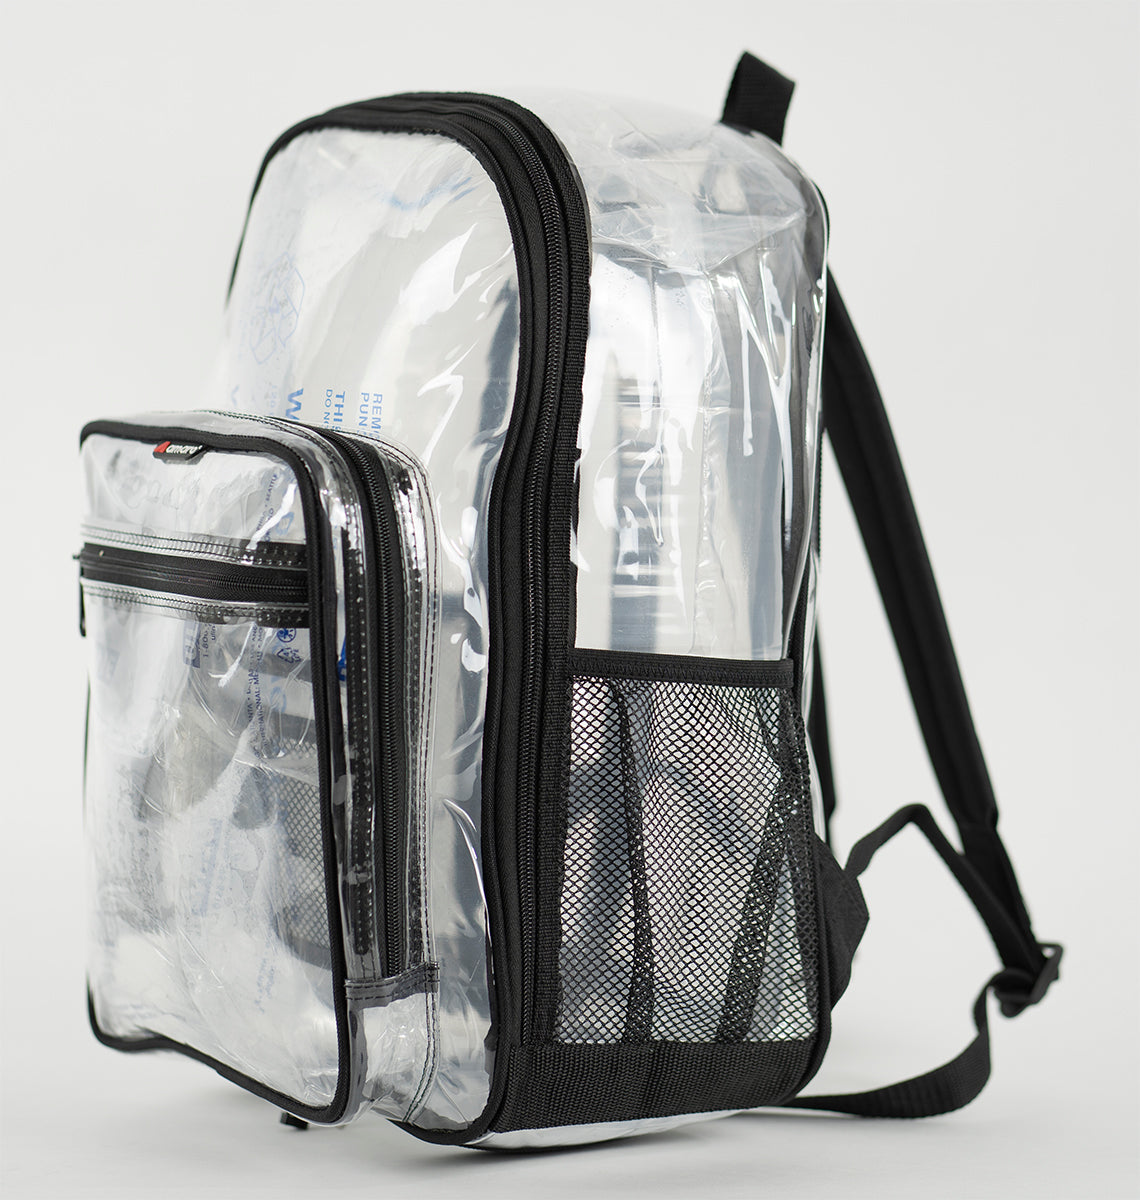 Amaro Clear Backpack   See Through Backpack   Clear Backpack For ... 942b3bd2fbf7